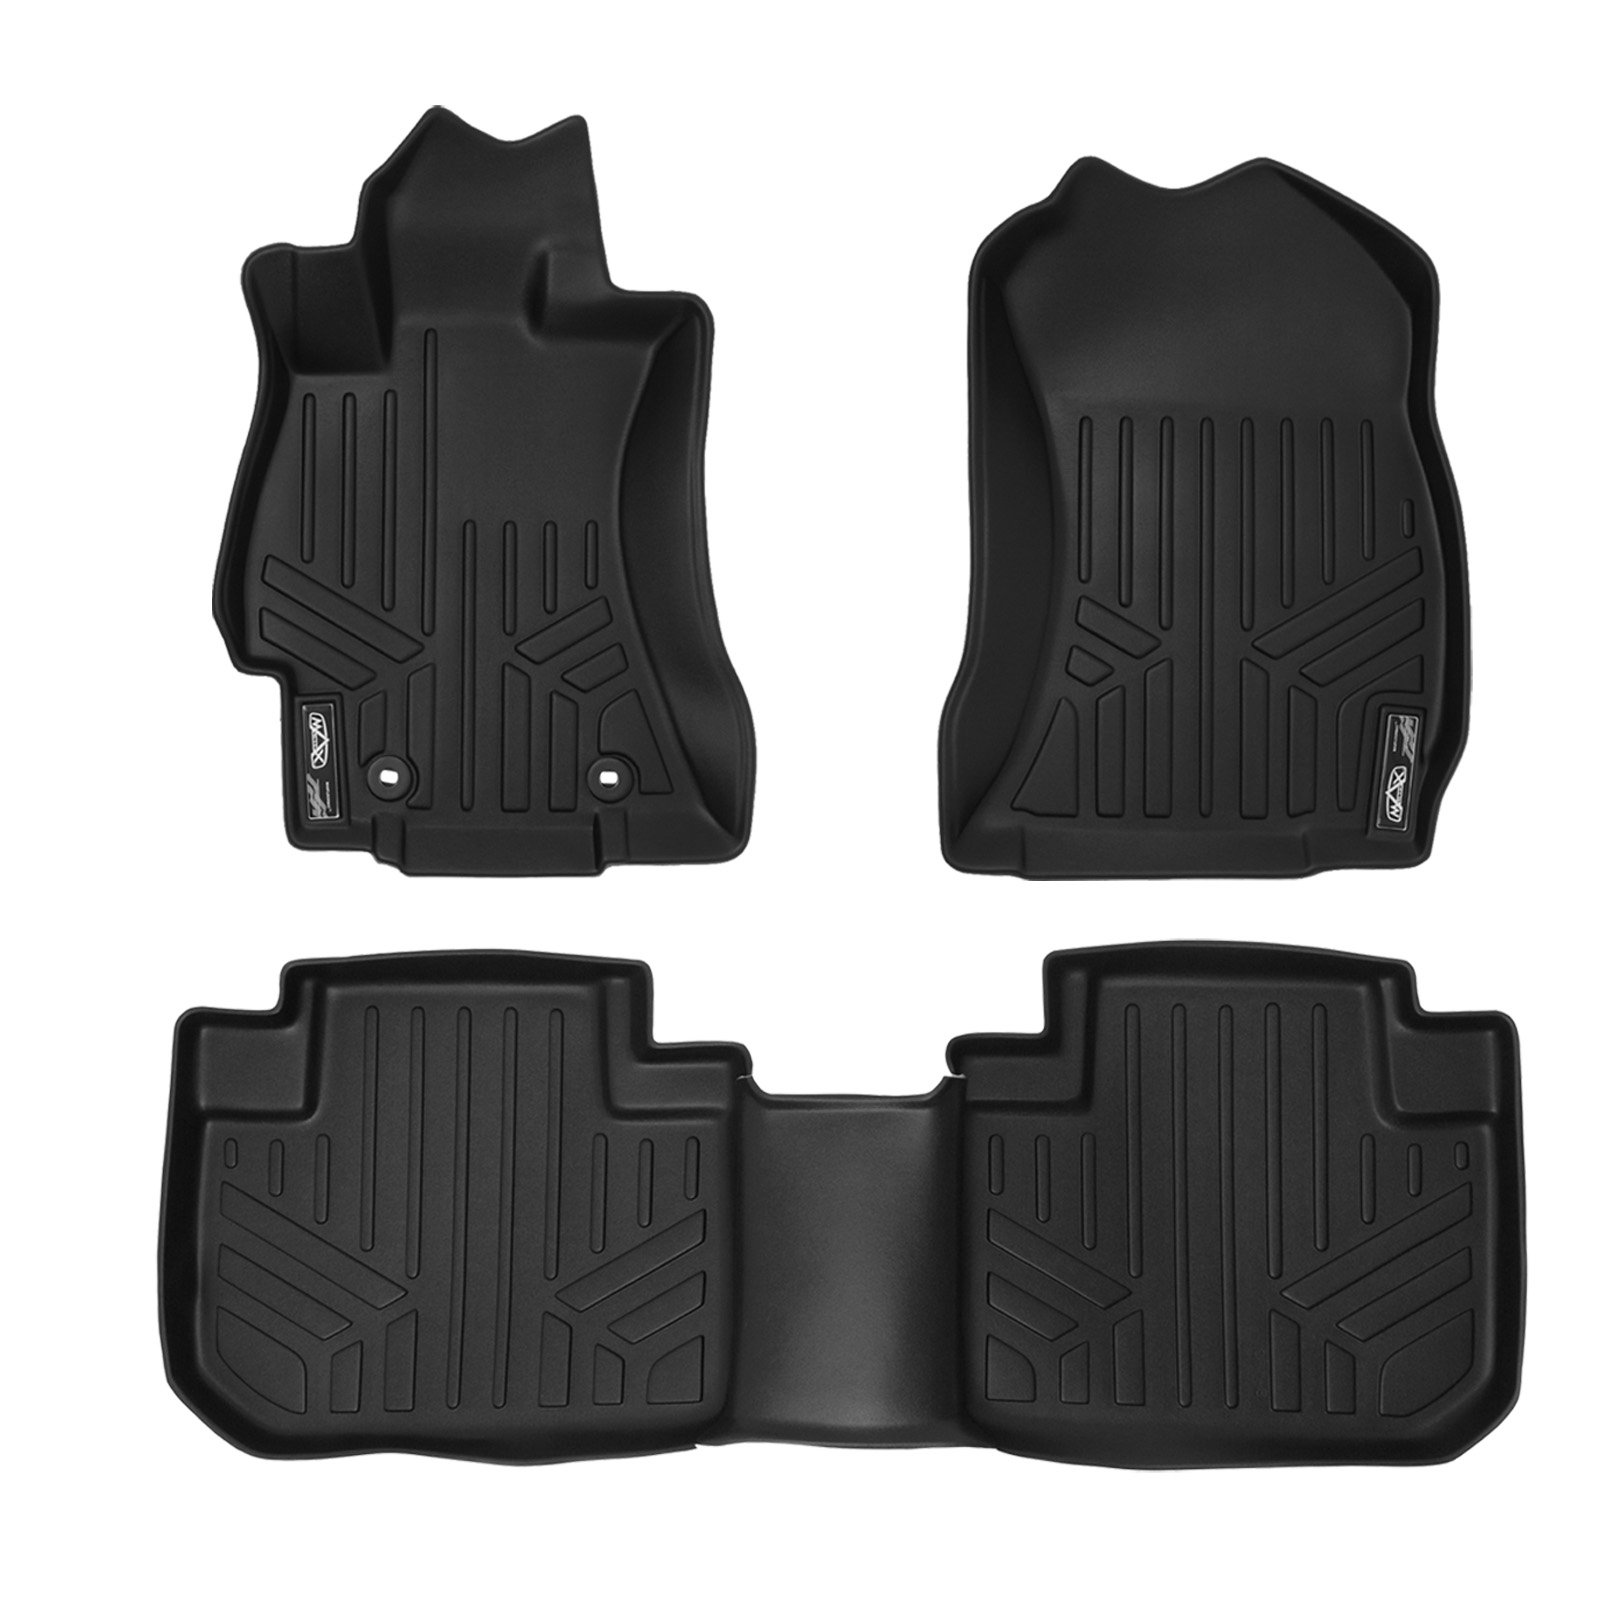 MAXLINER Custom Fit Floor Mats 2 Row Liner Set Black for 2014-2018 Subaru Forester